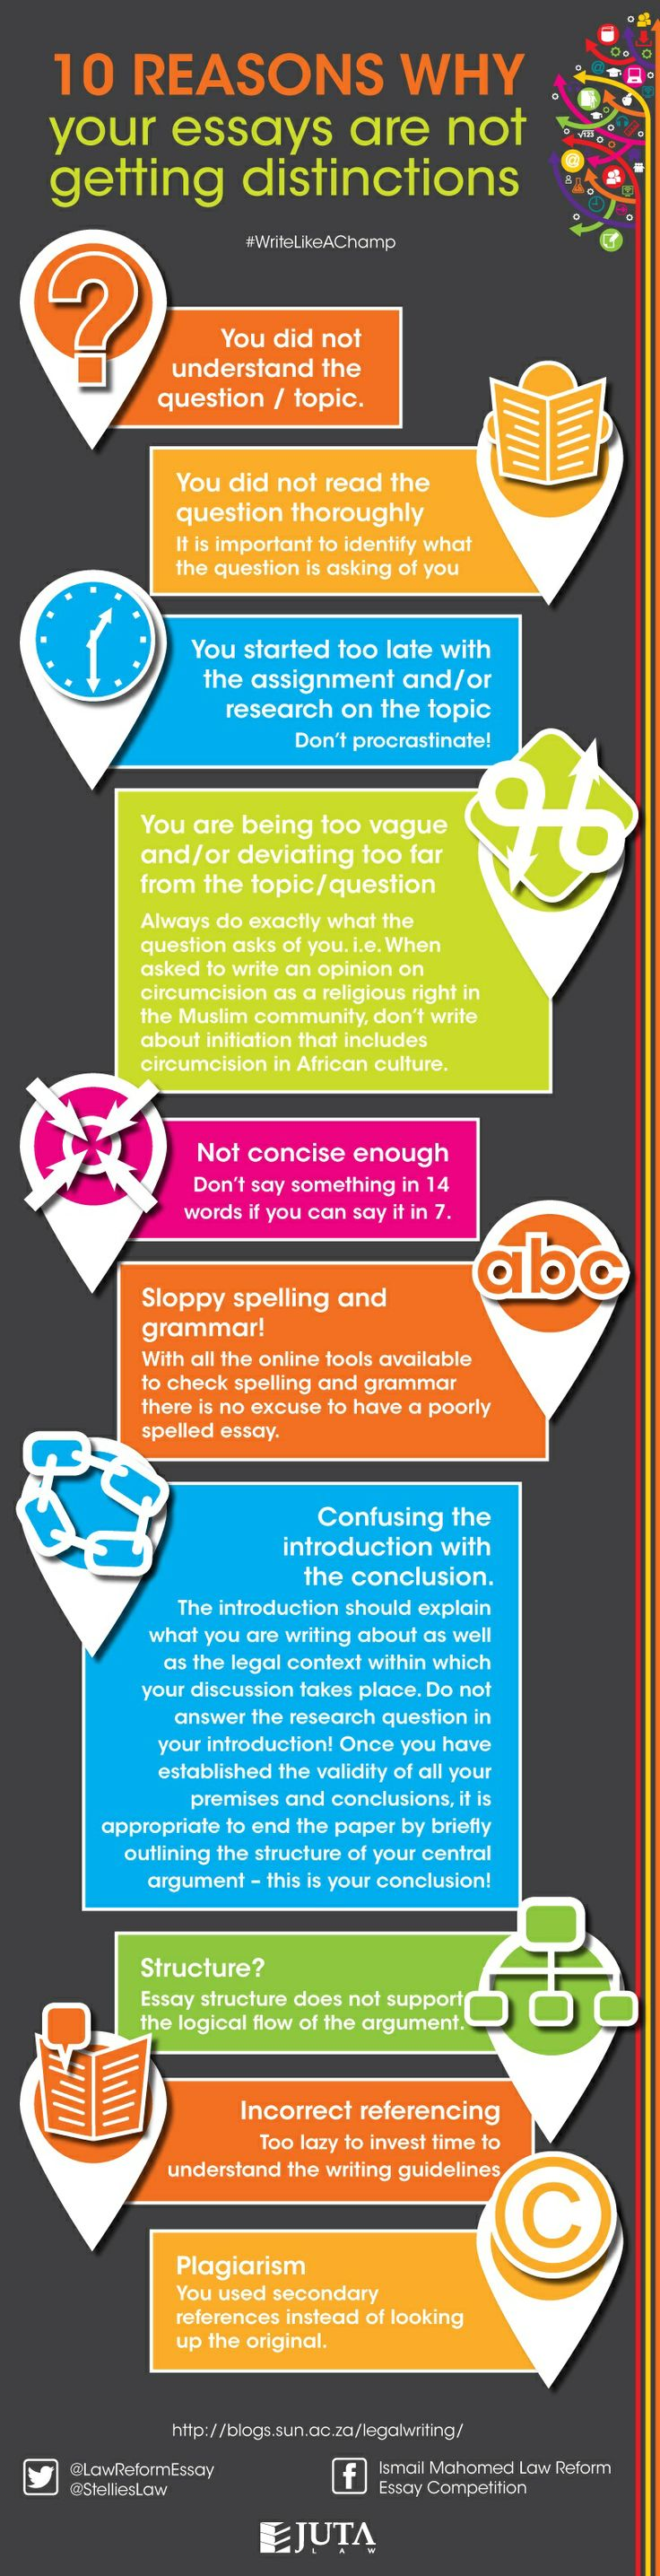 17 best images about legal essay writing guidelines infographic the help of stellieslaw we listed the 10 reasons why your essays